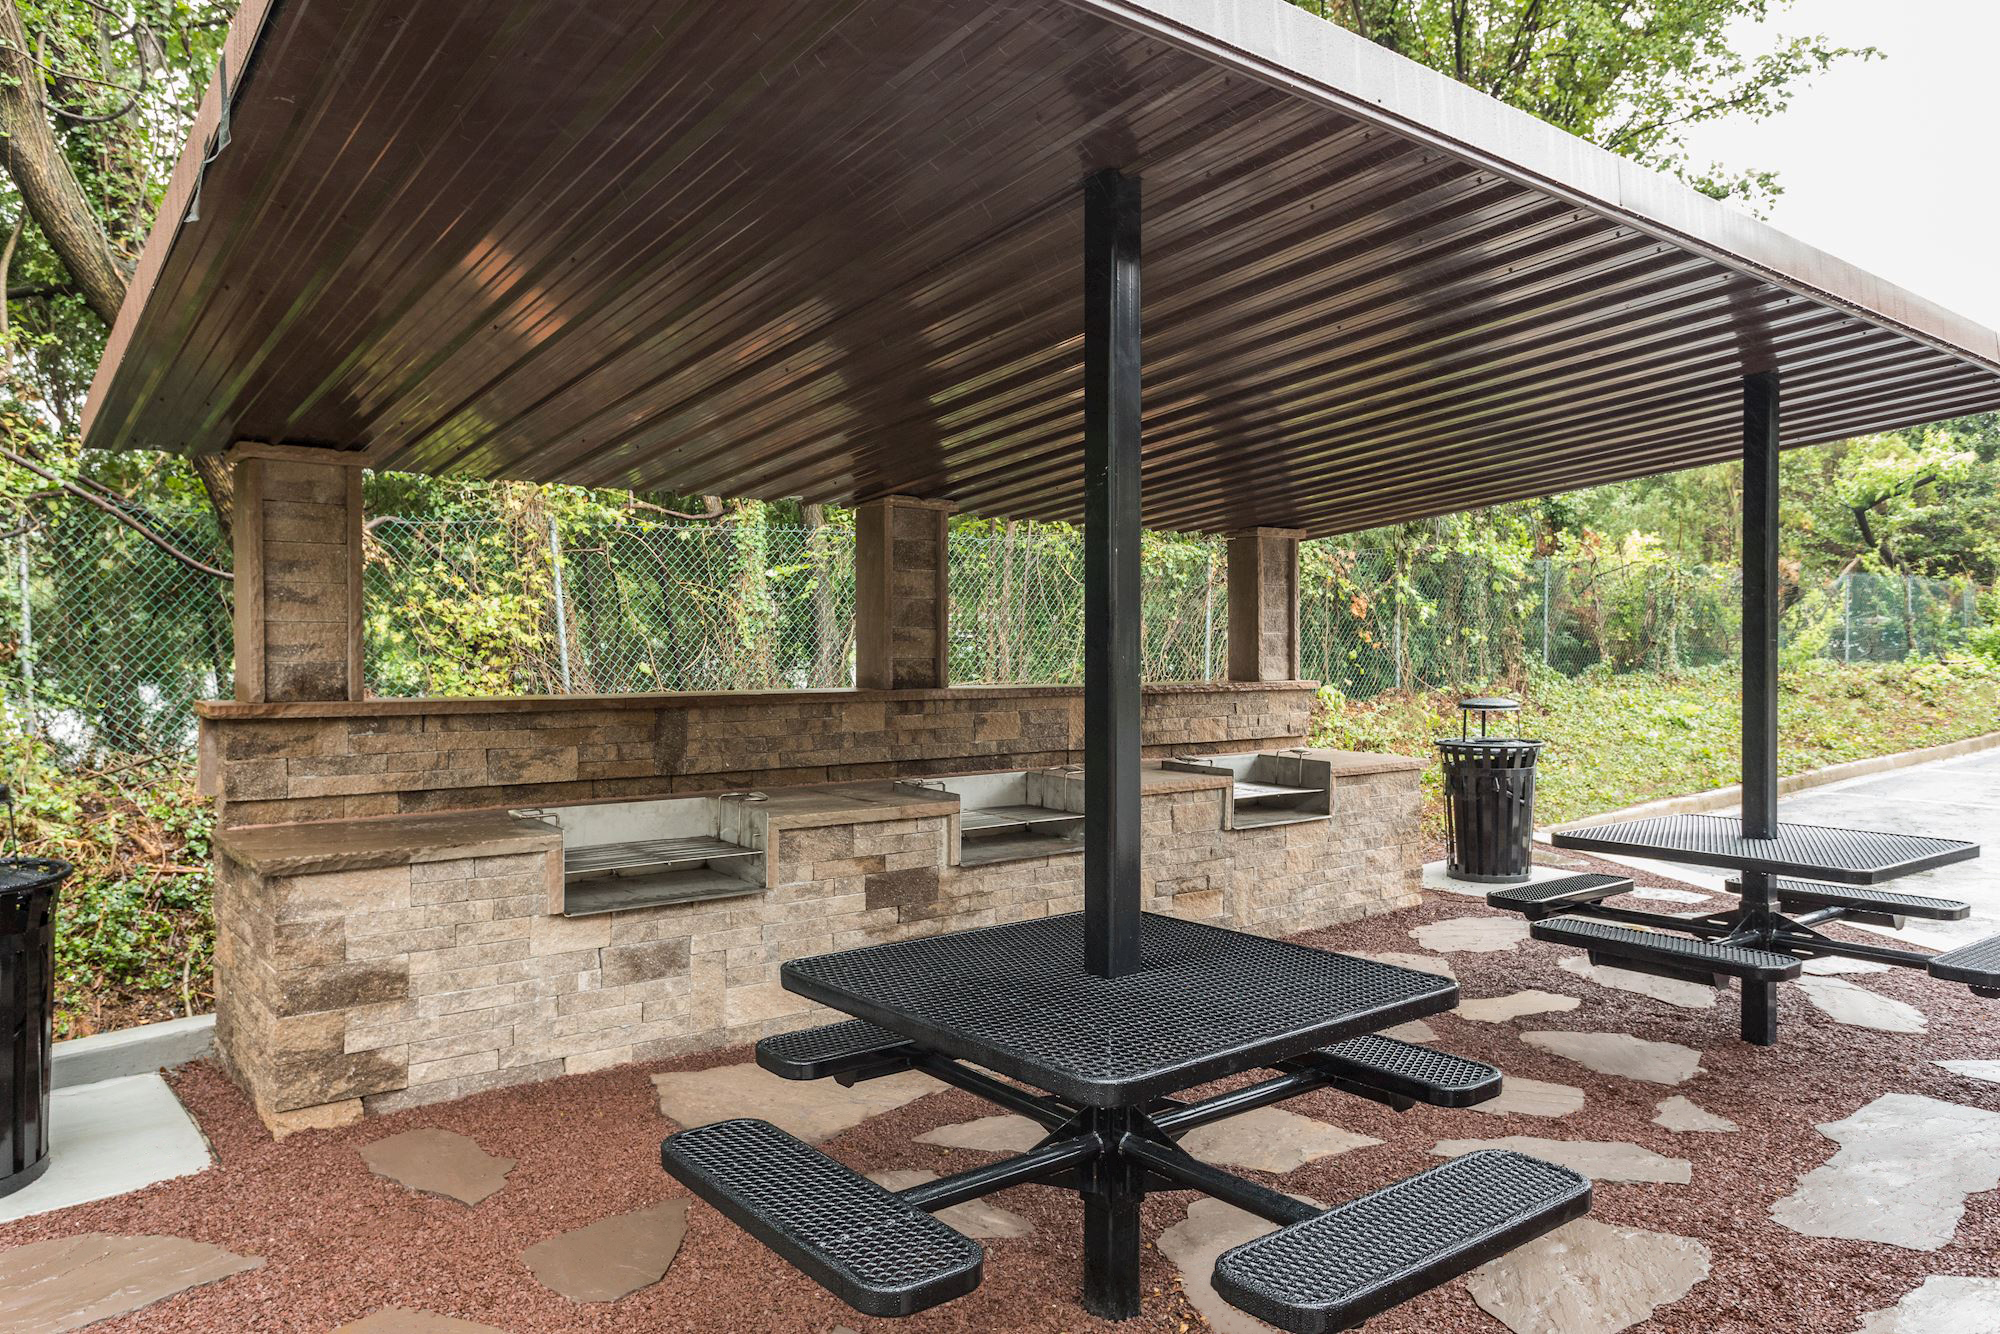 Annen Woods Apartments in Pikesville, MD - Grilling & Outdoor Dining Area